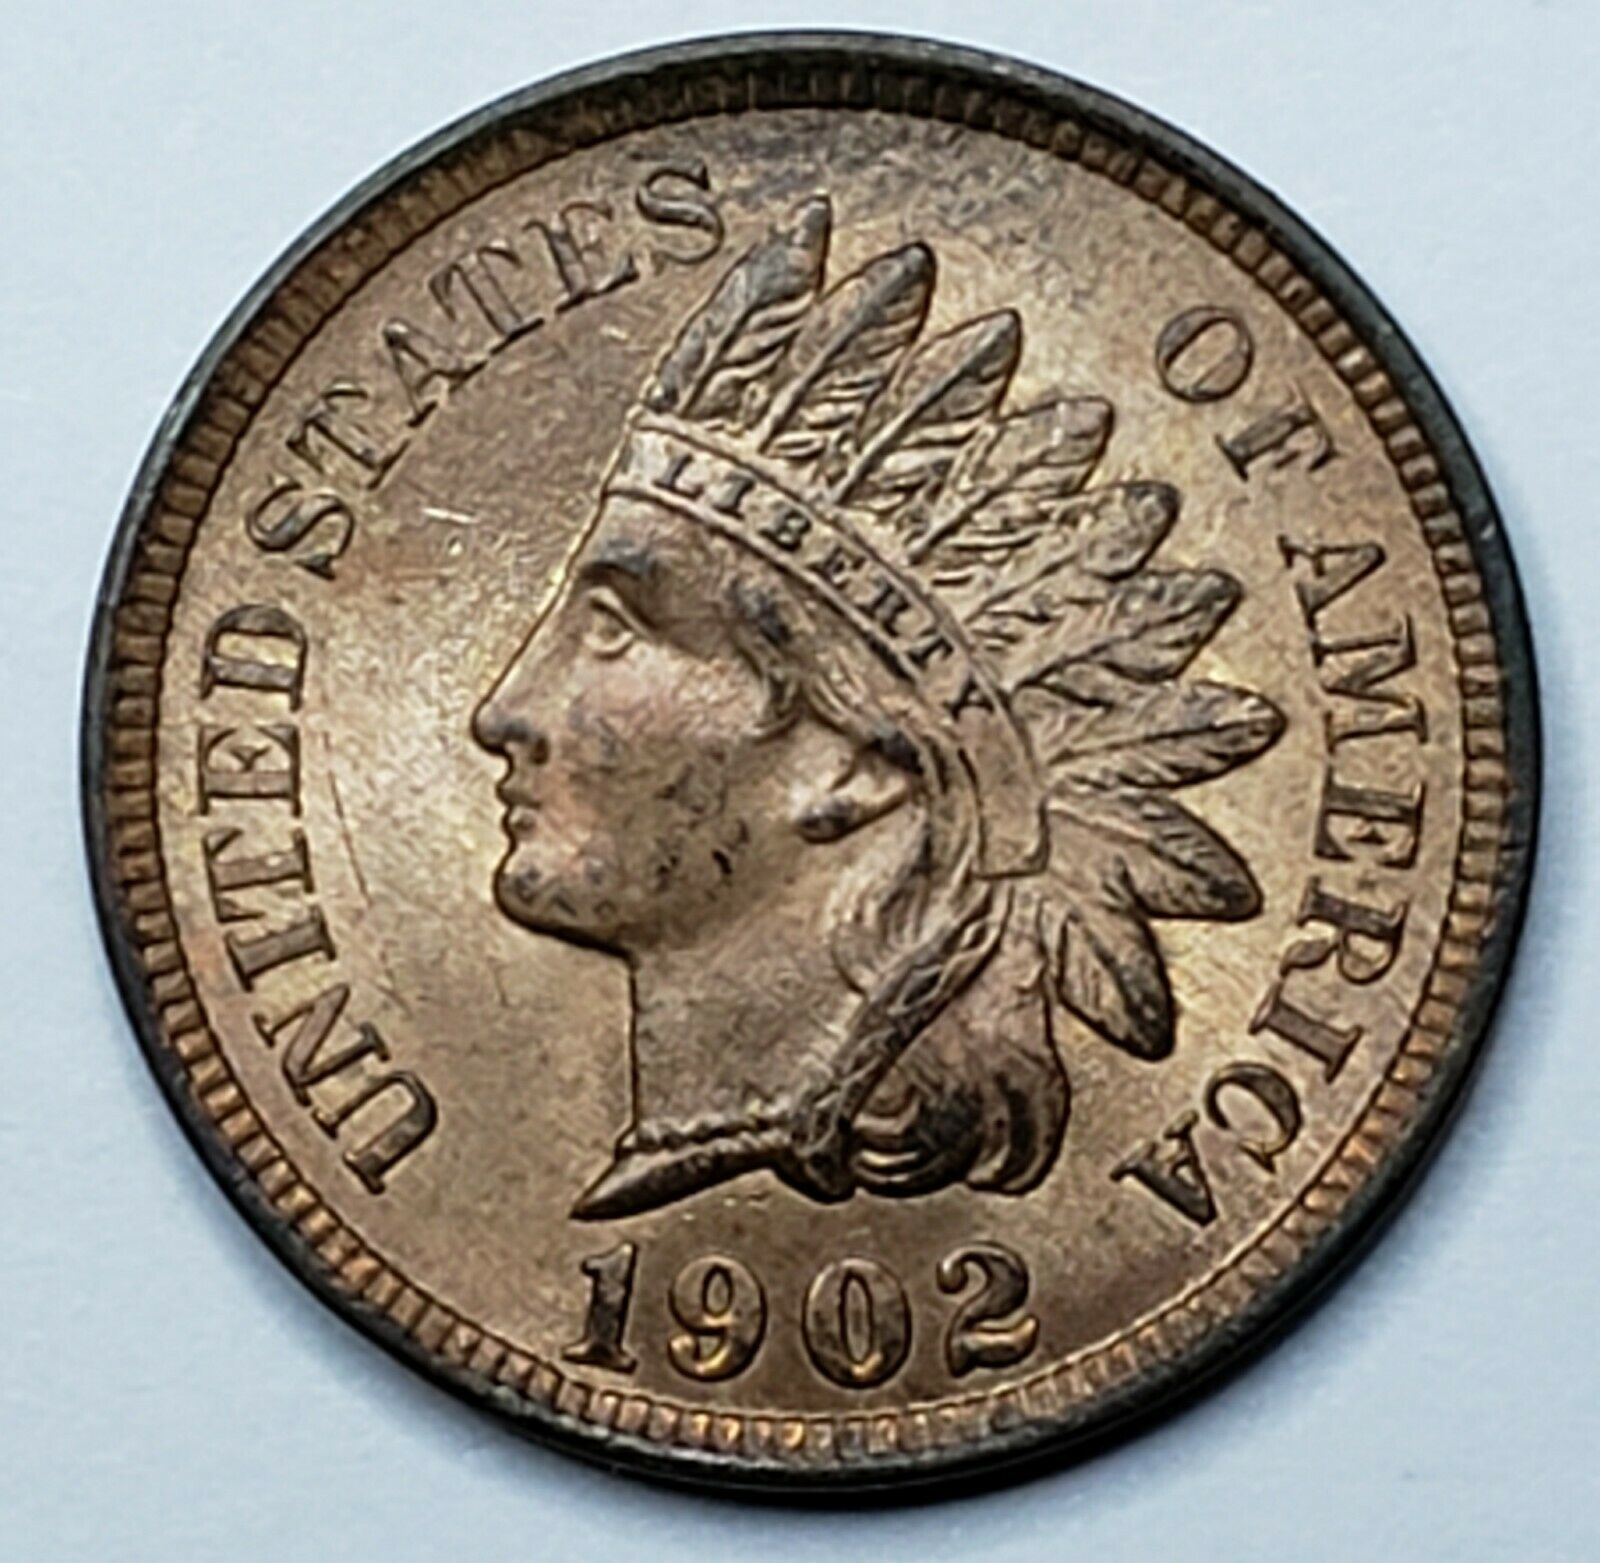 1902 Indian Head Cent Penny Coin Lot 519-93